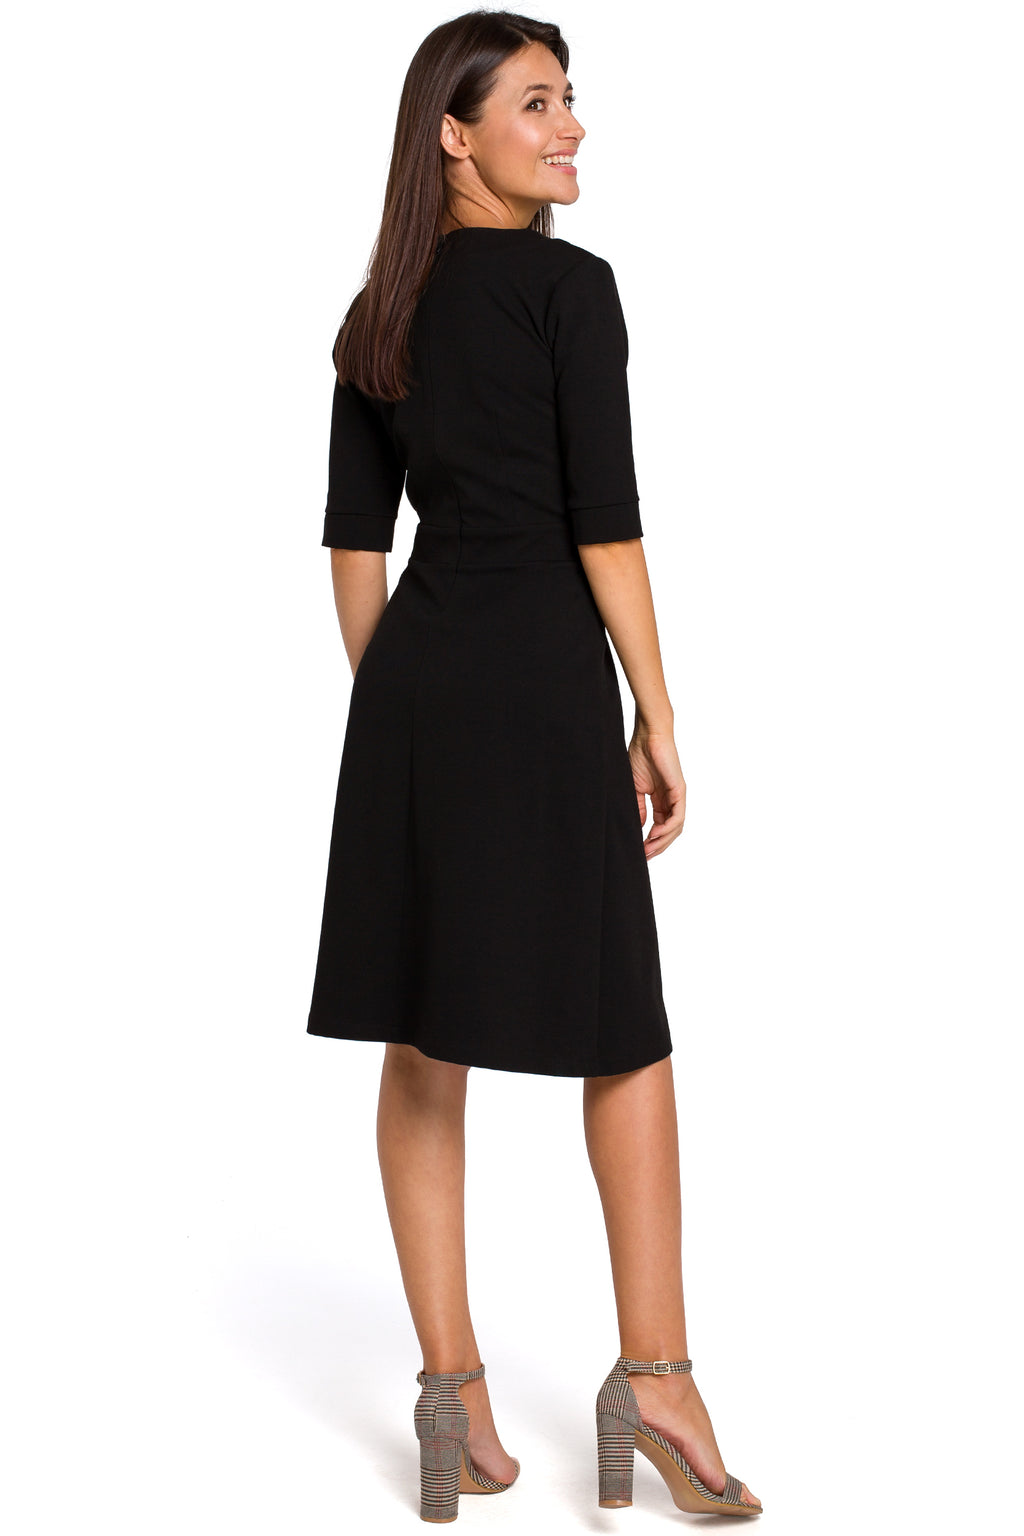 Black Cotton Shift Dress With Elbow Sleeves - So Chic Boutique